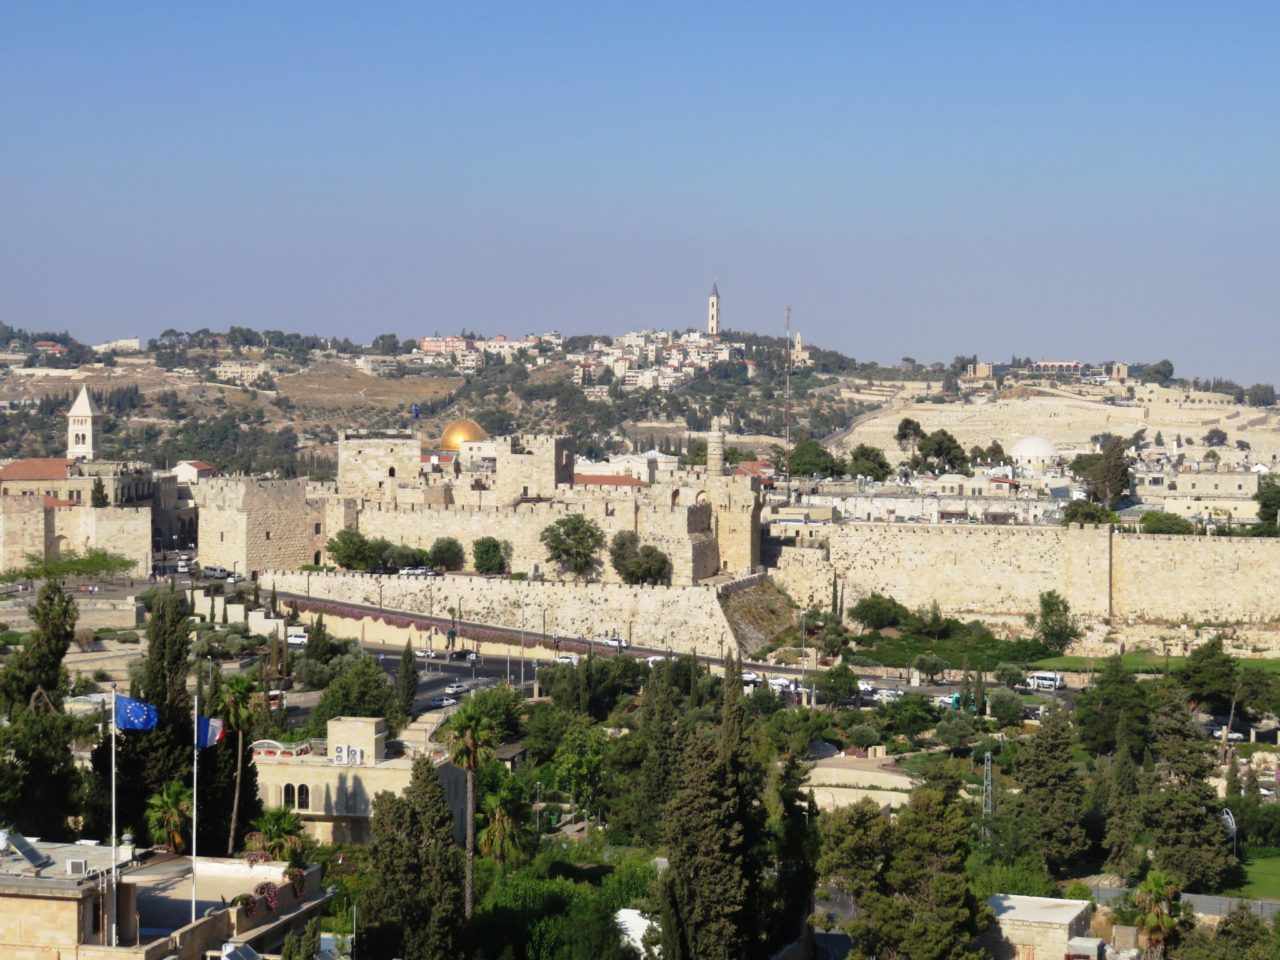 King David Hotel, Jerusalem Israel - View of old city of Jerusalem and Mount of Olives from King David Hotel